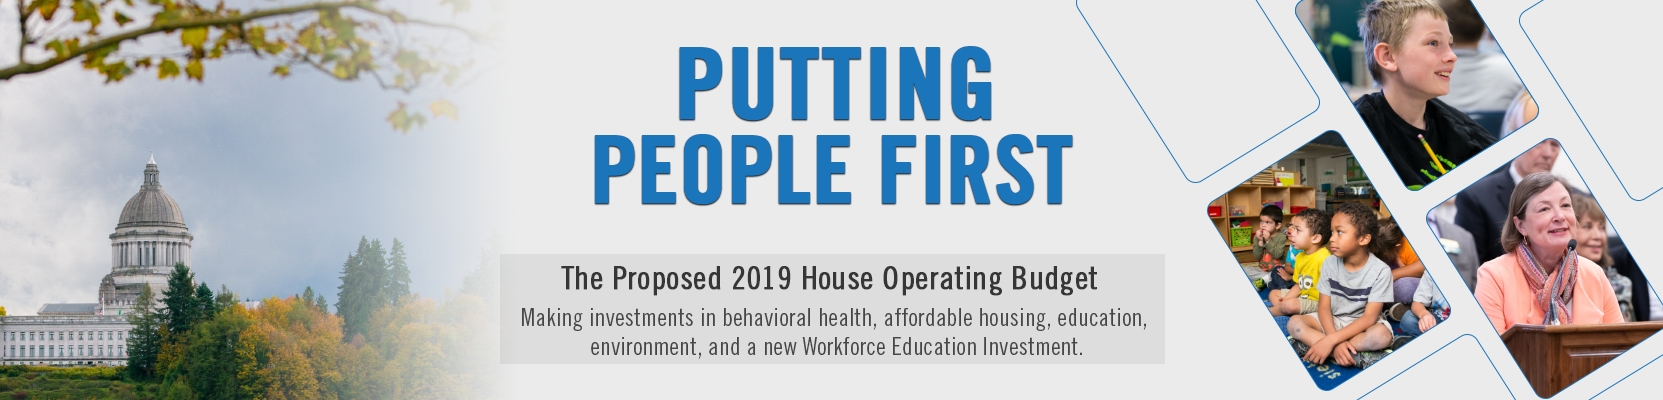 The House 2019 budget proposal